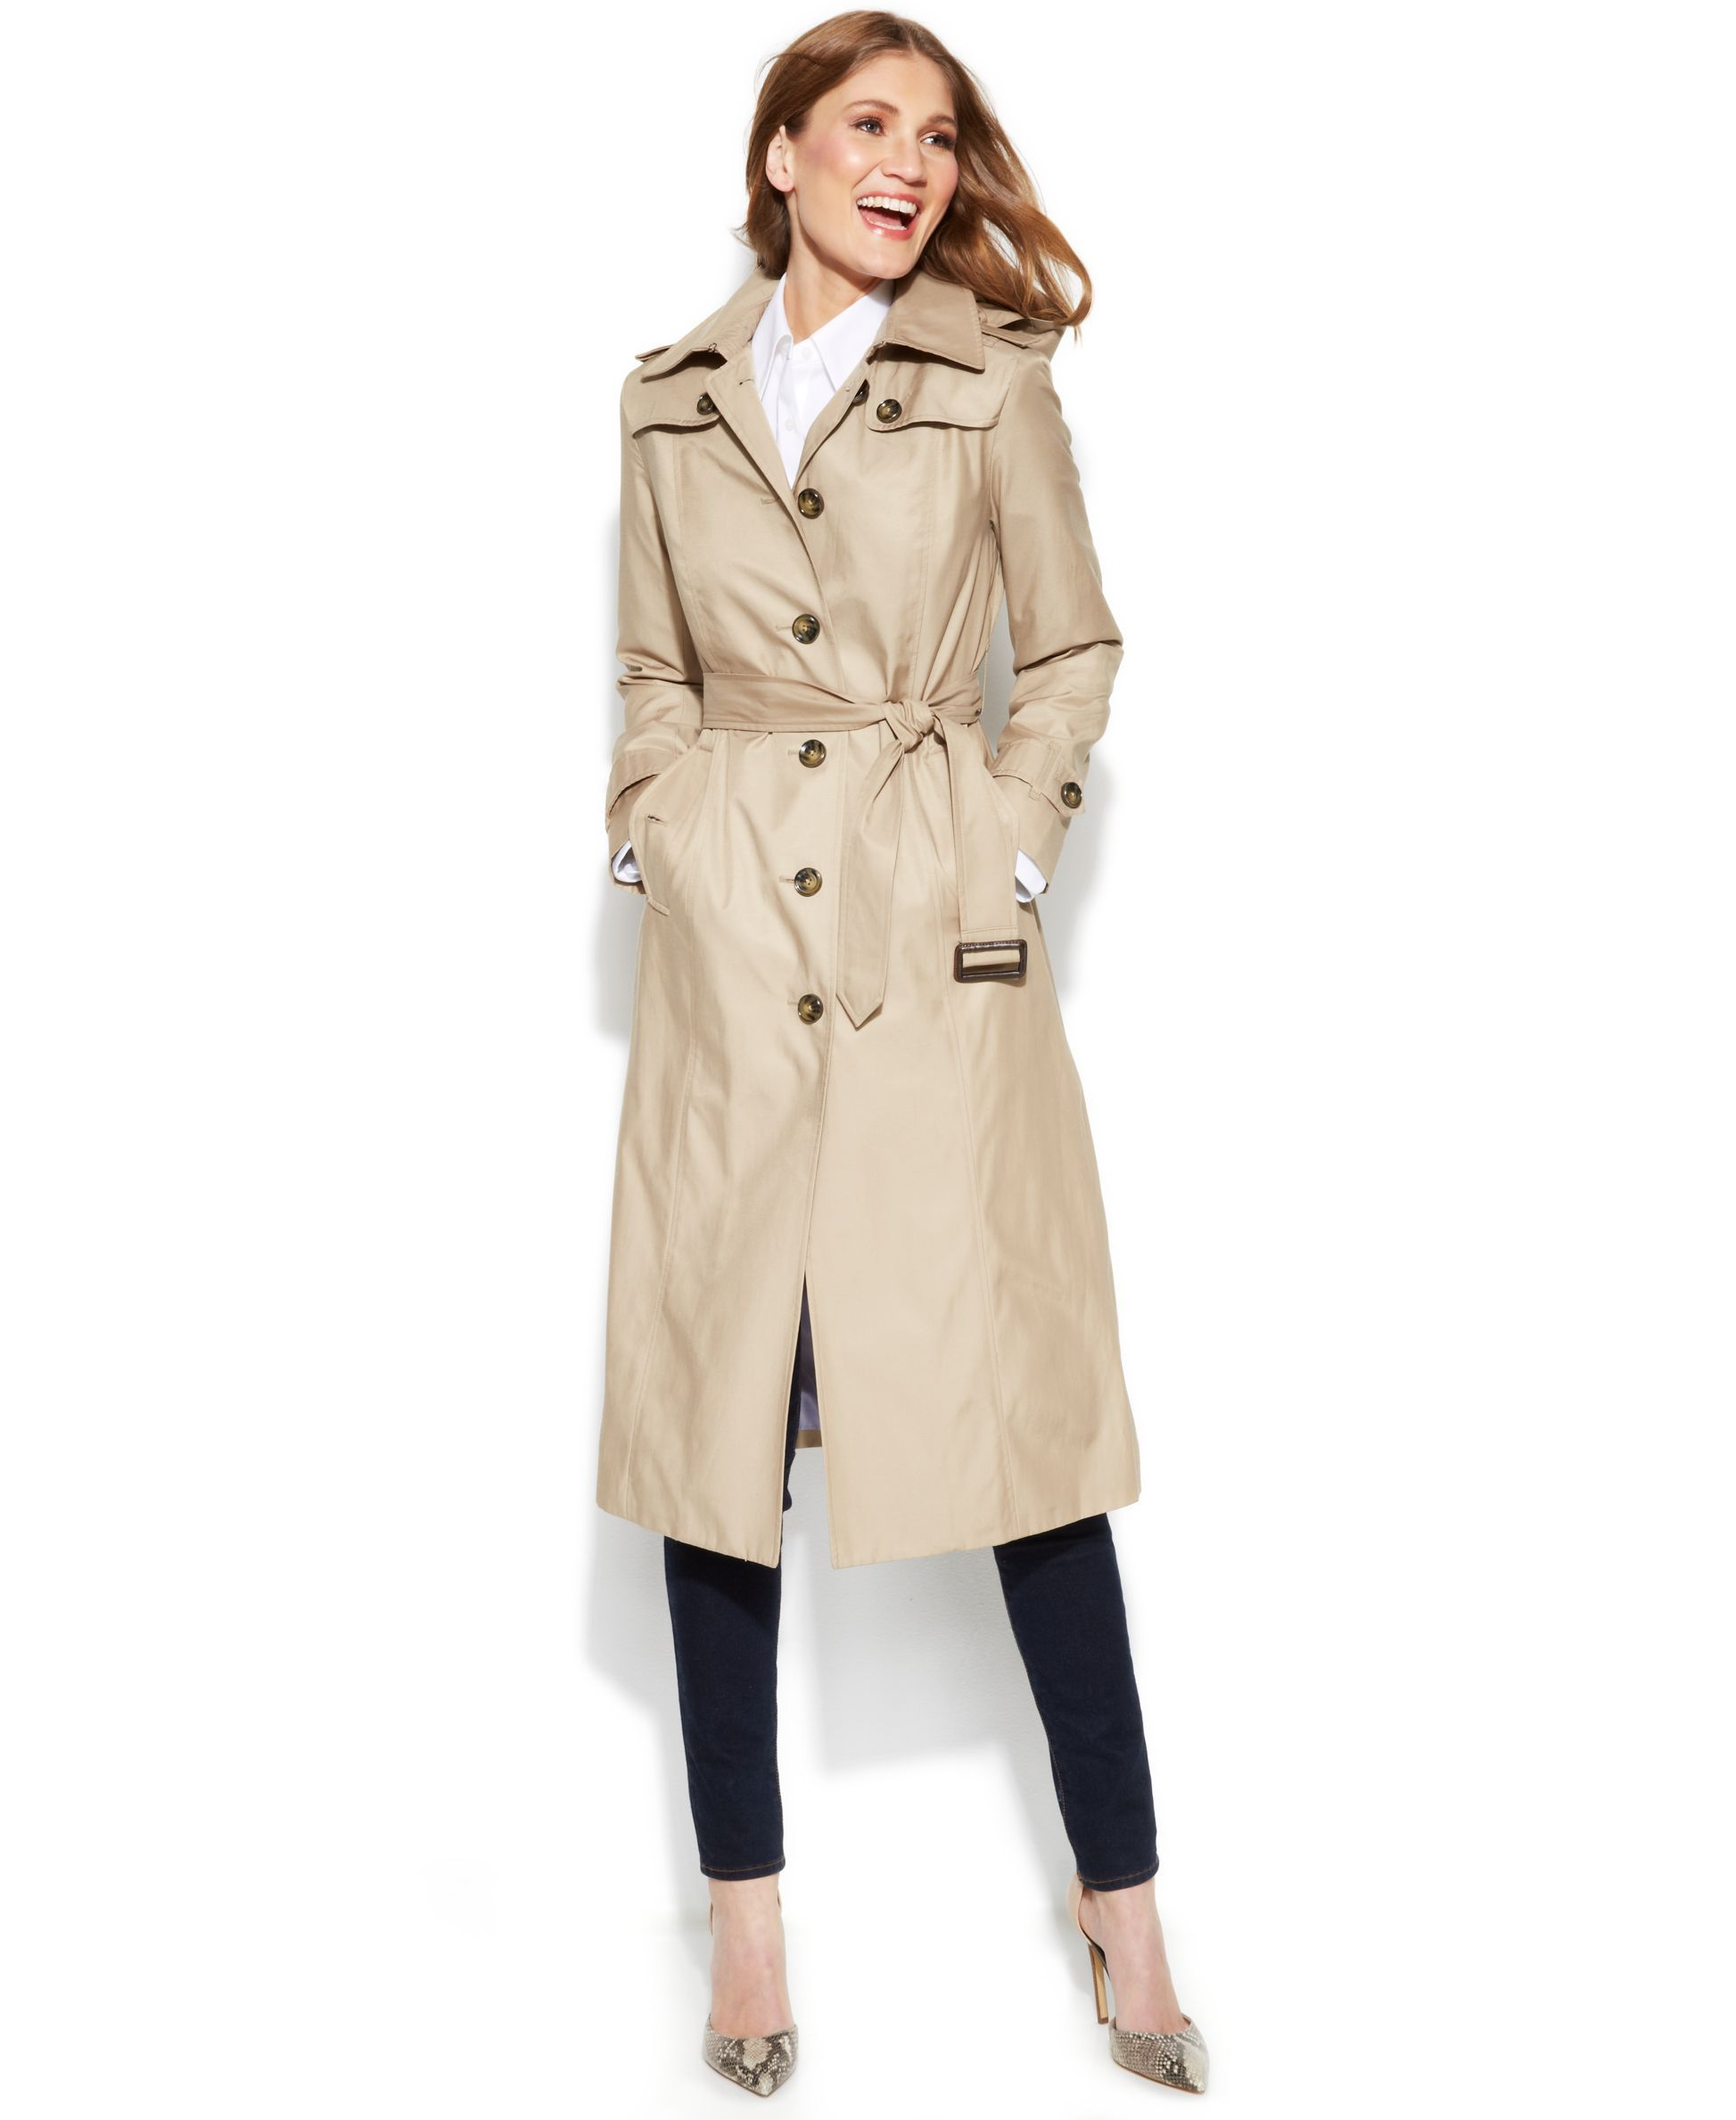 9d2ef633741 London Fog Hooded Belted Maxi Trench Coat